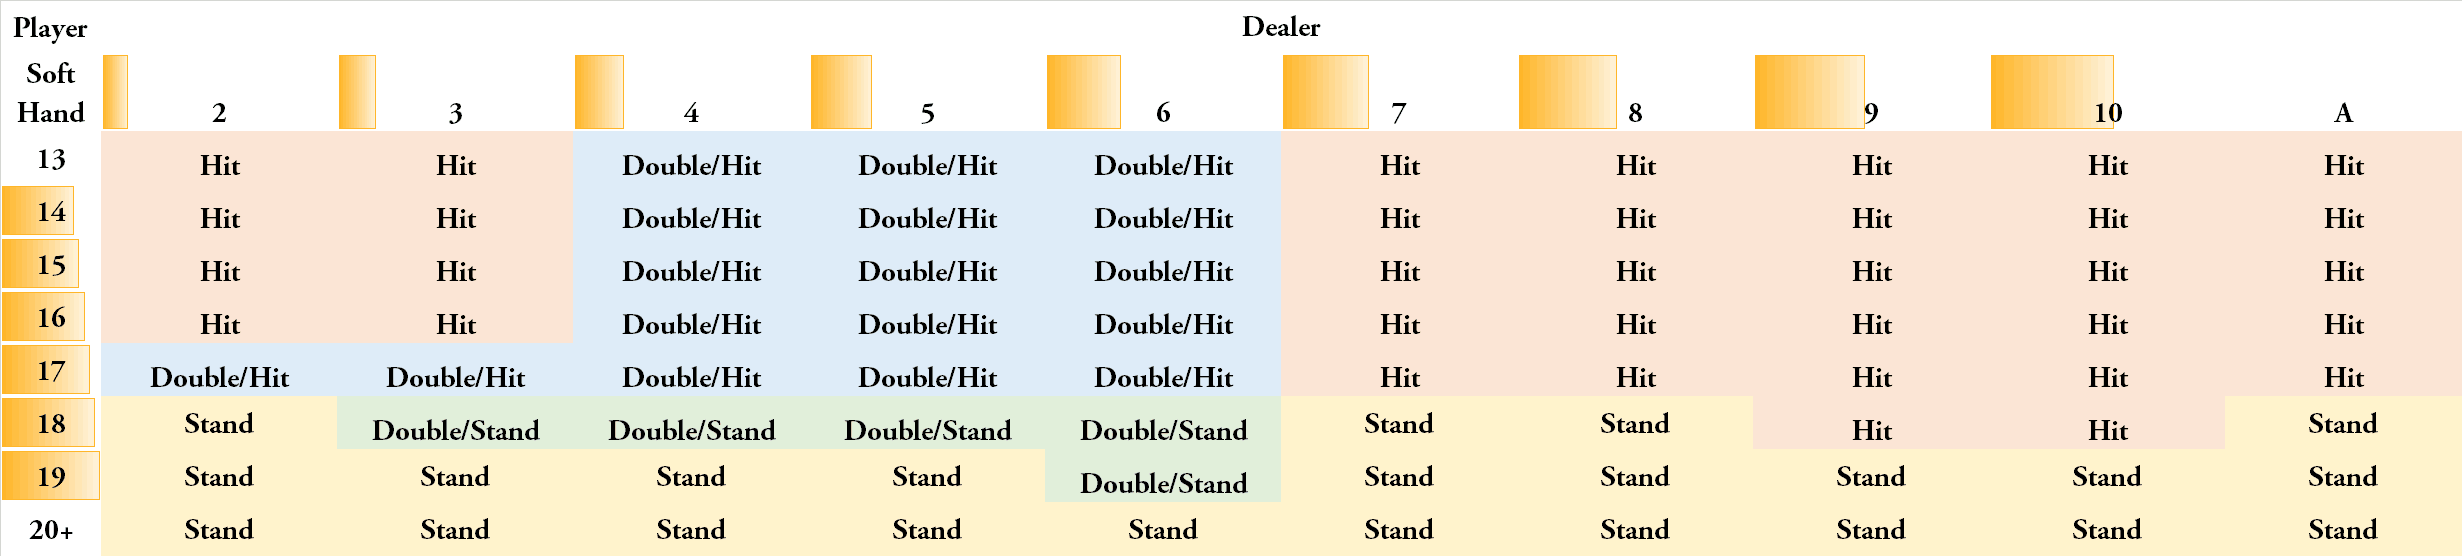 Single deck blackjack strategy table 2